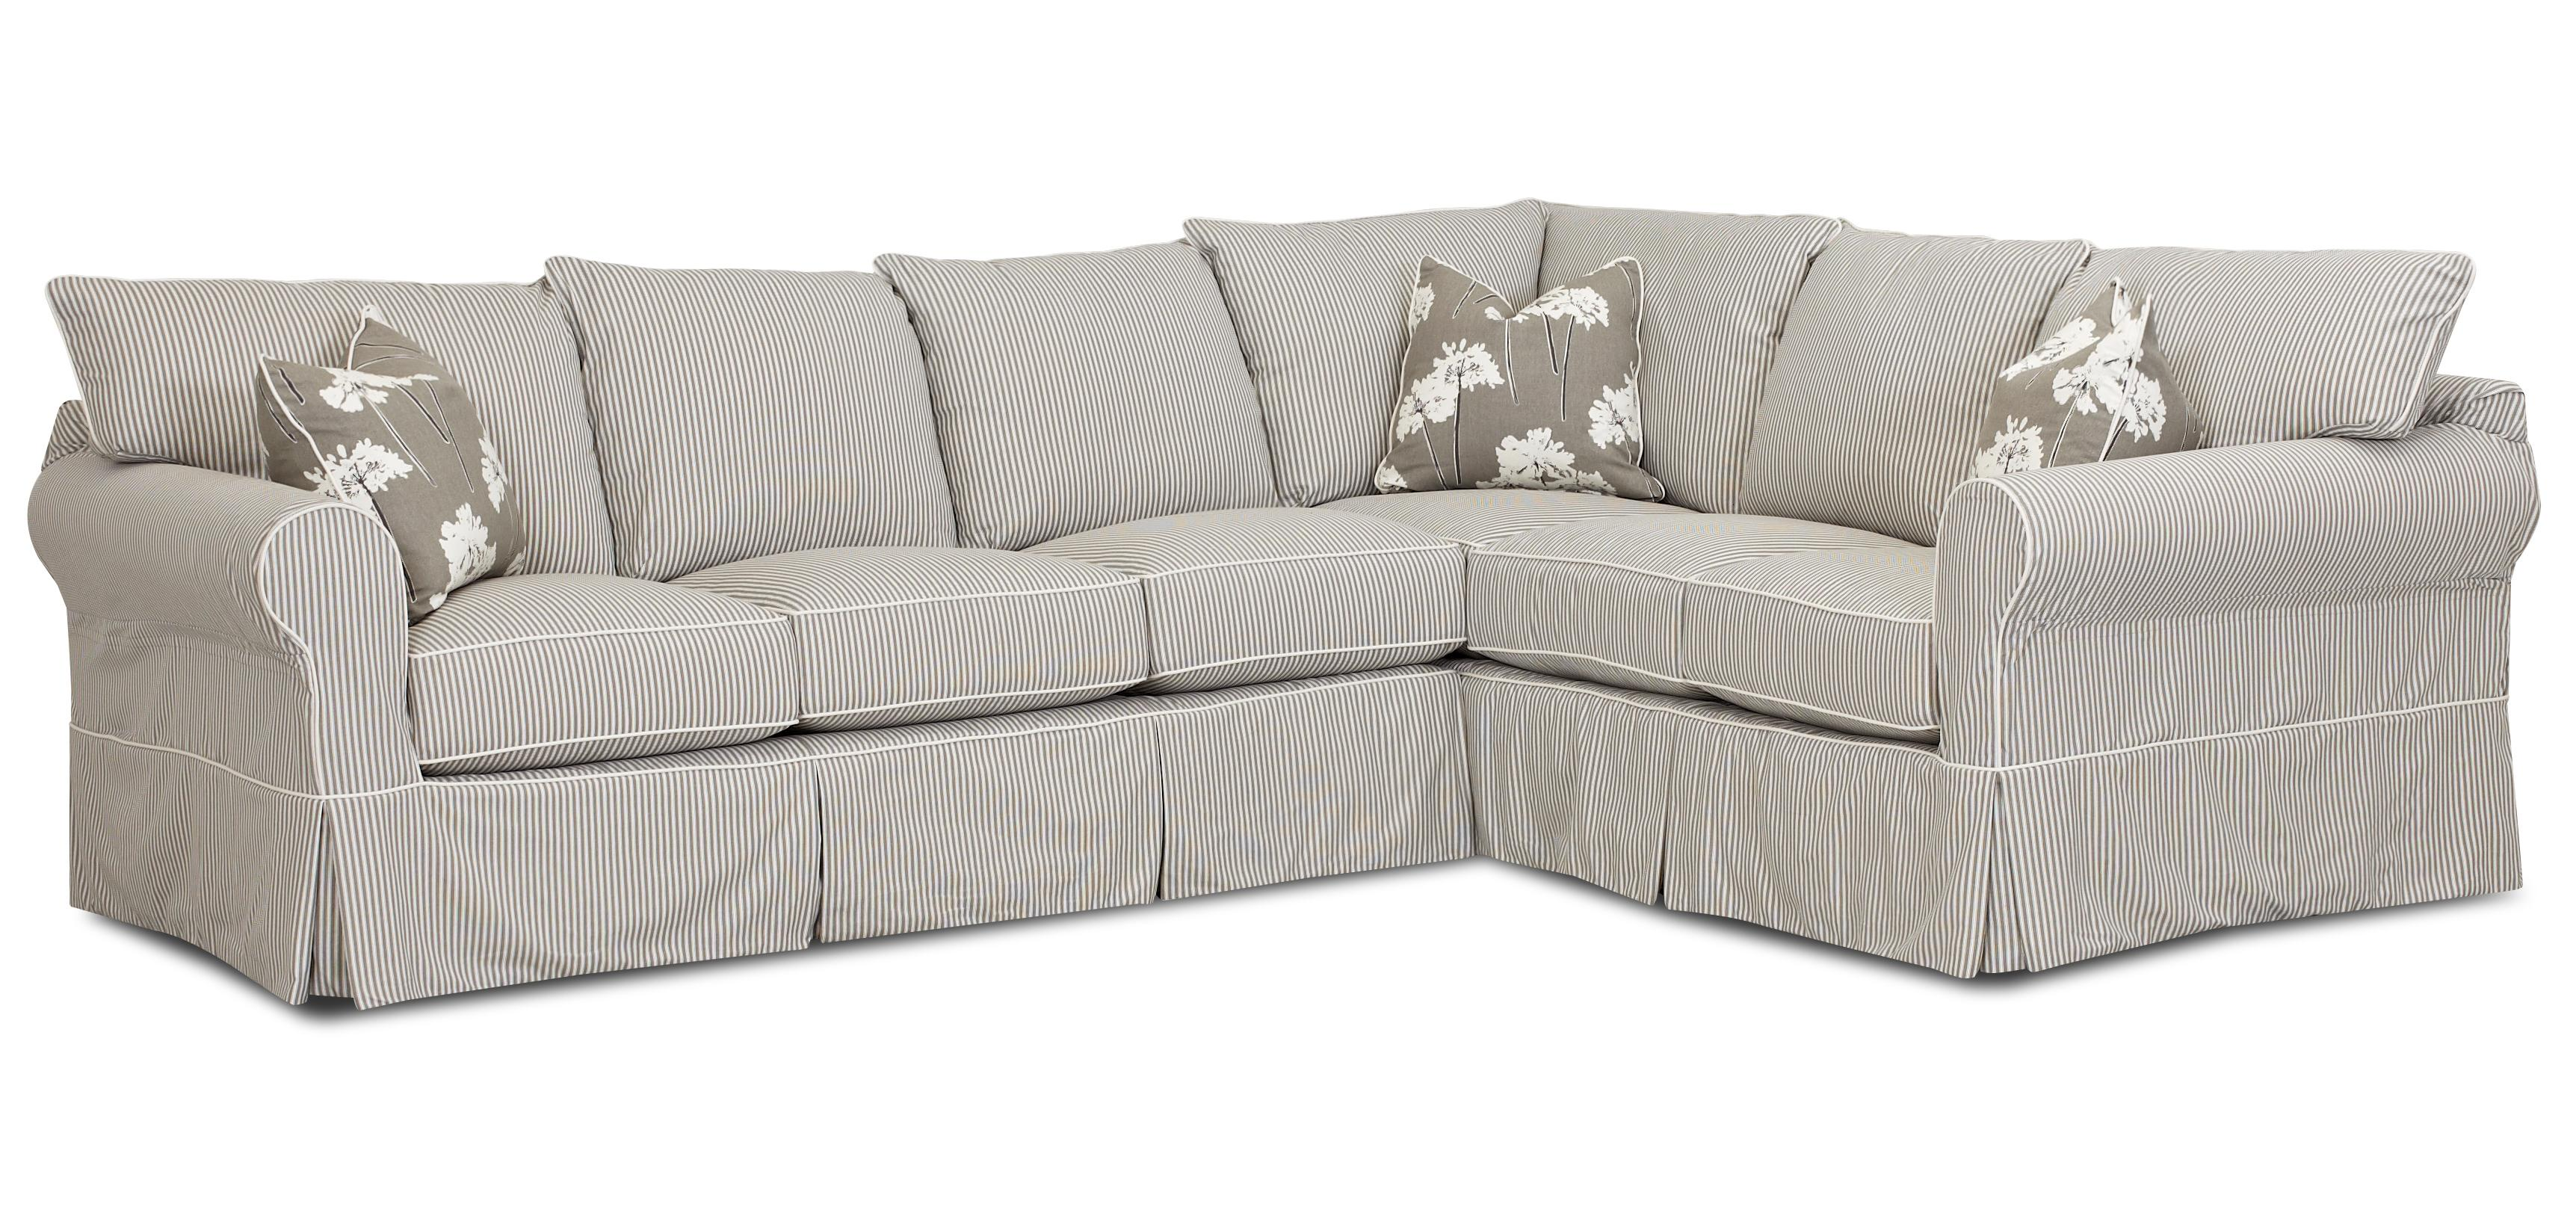 Slipcover Sofa with Skirt by Klaussner